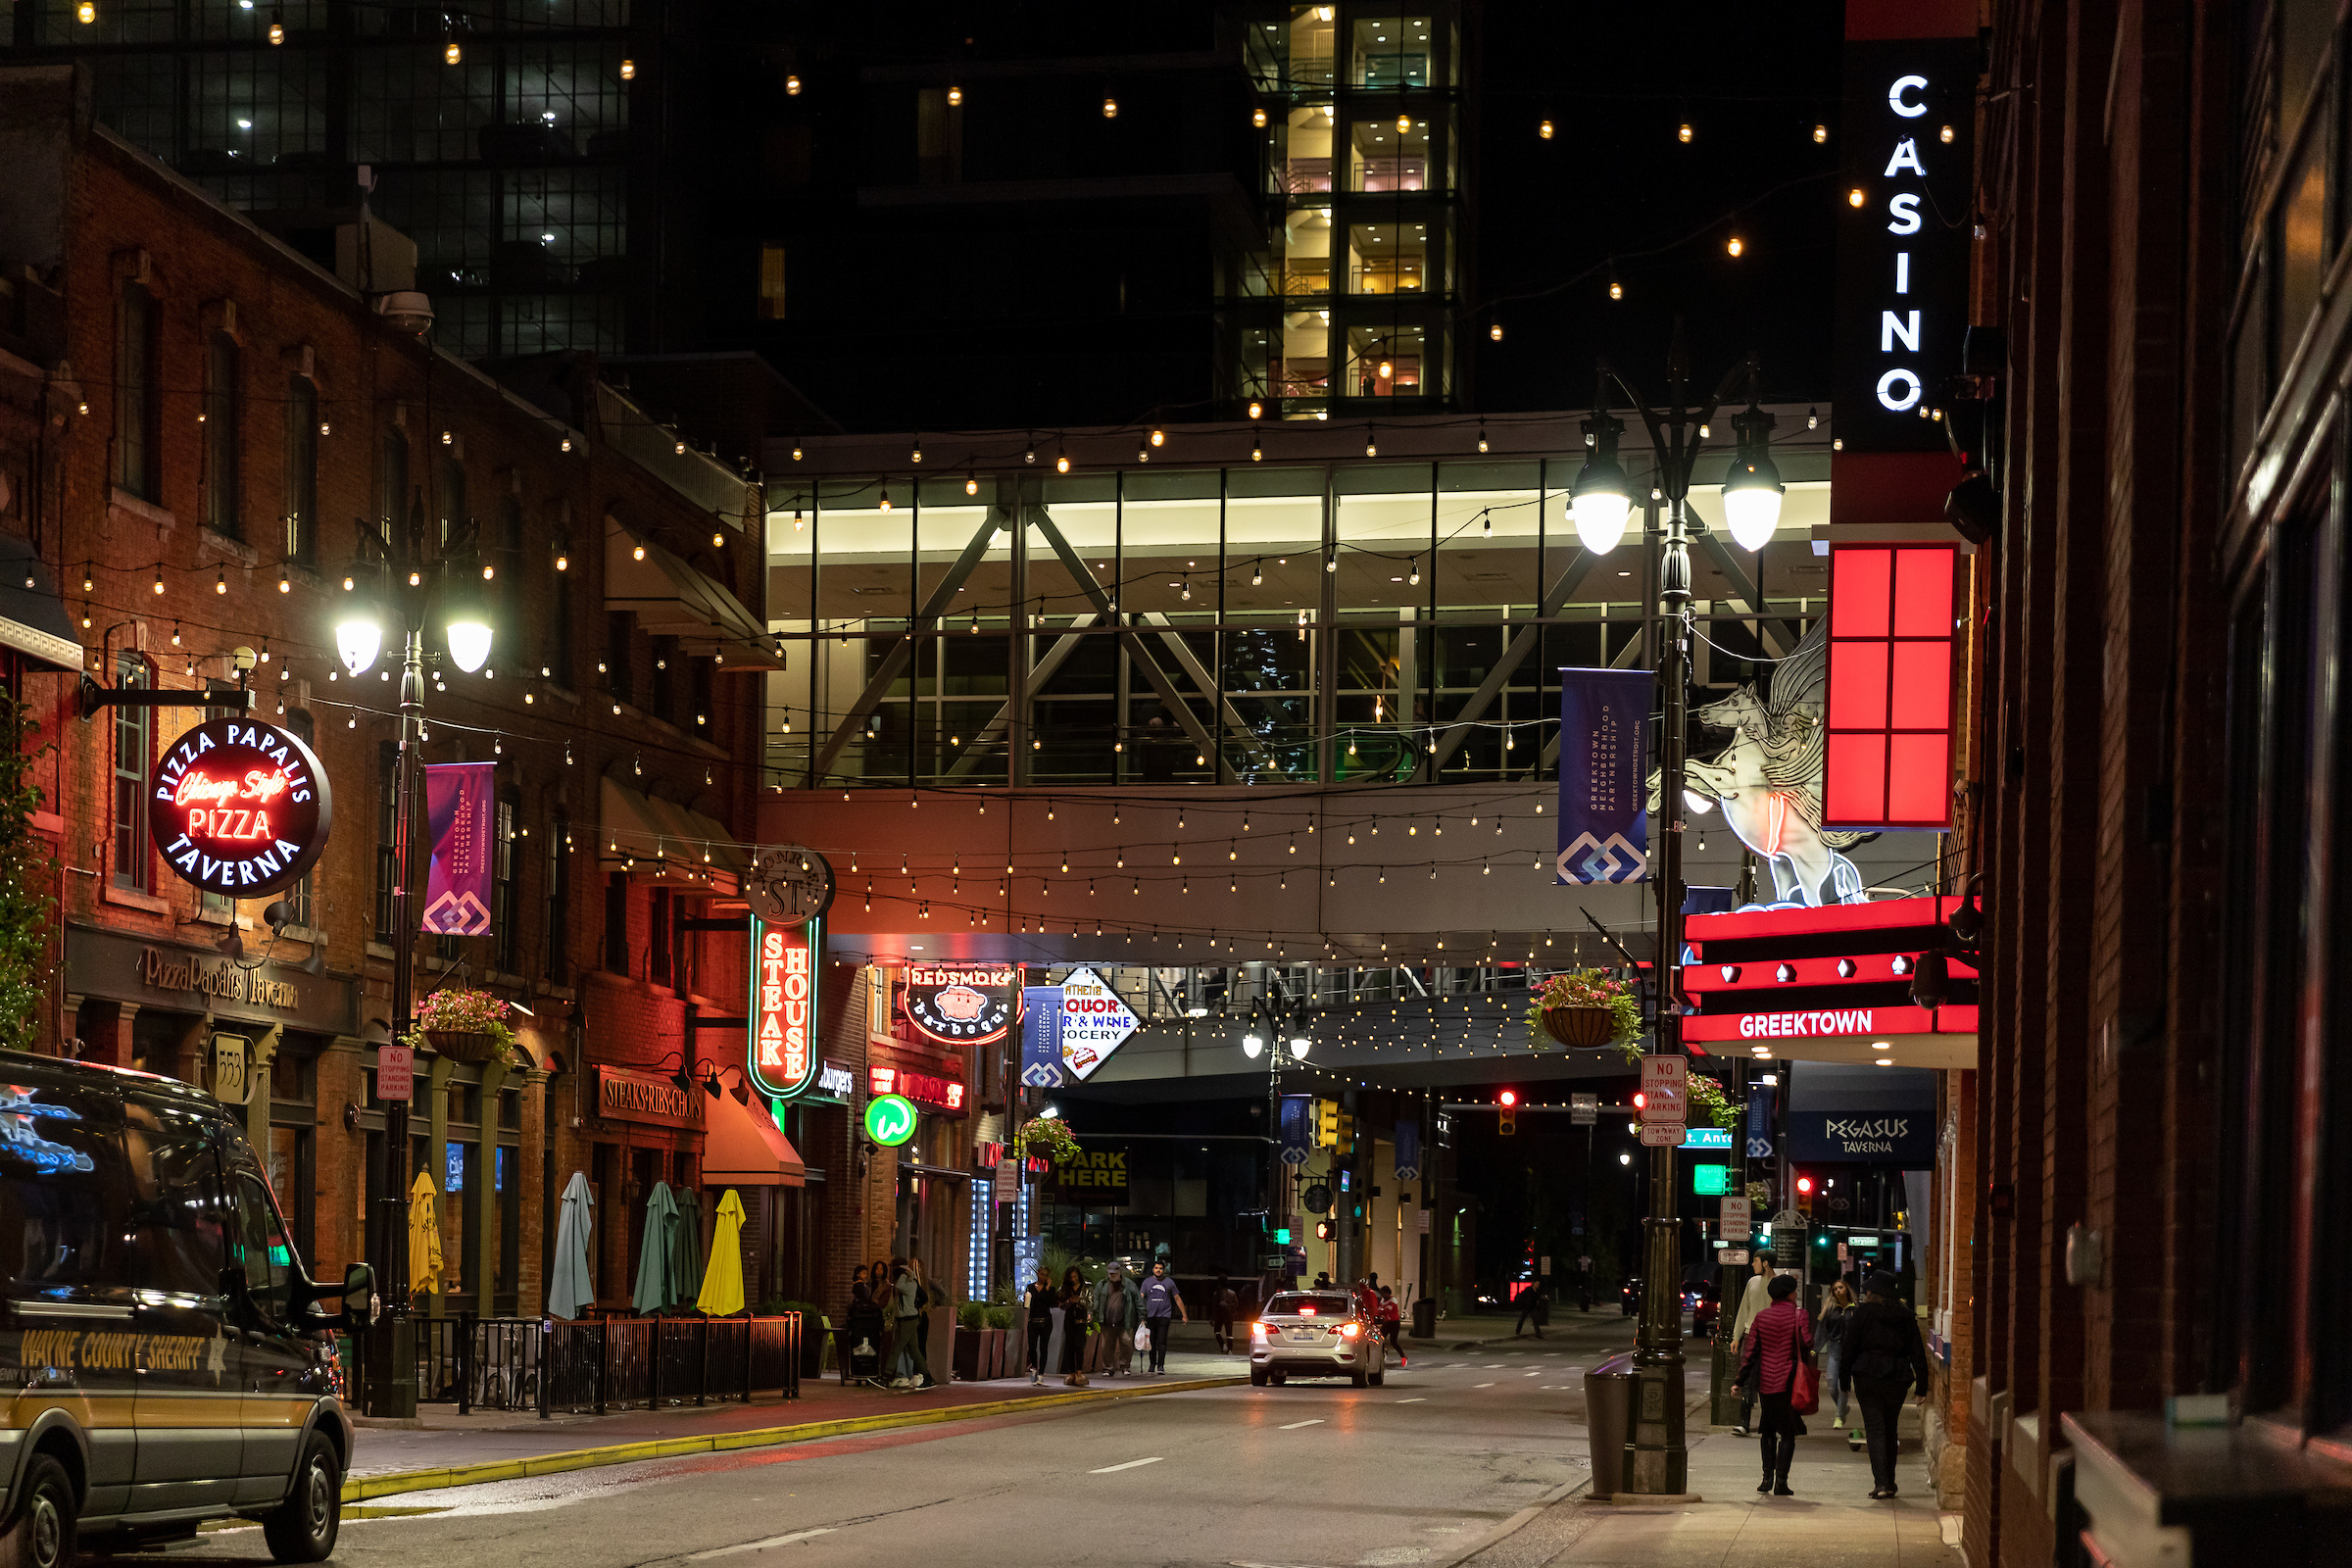 Restaurant signs are shown along the street next to the Greektown Casino at night.